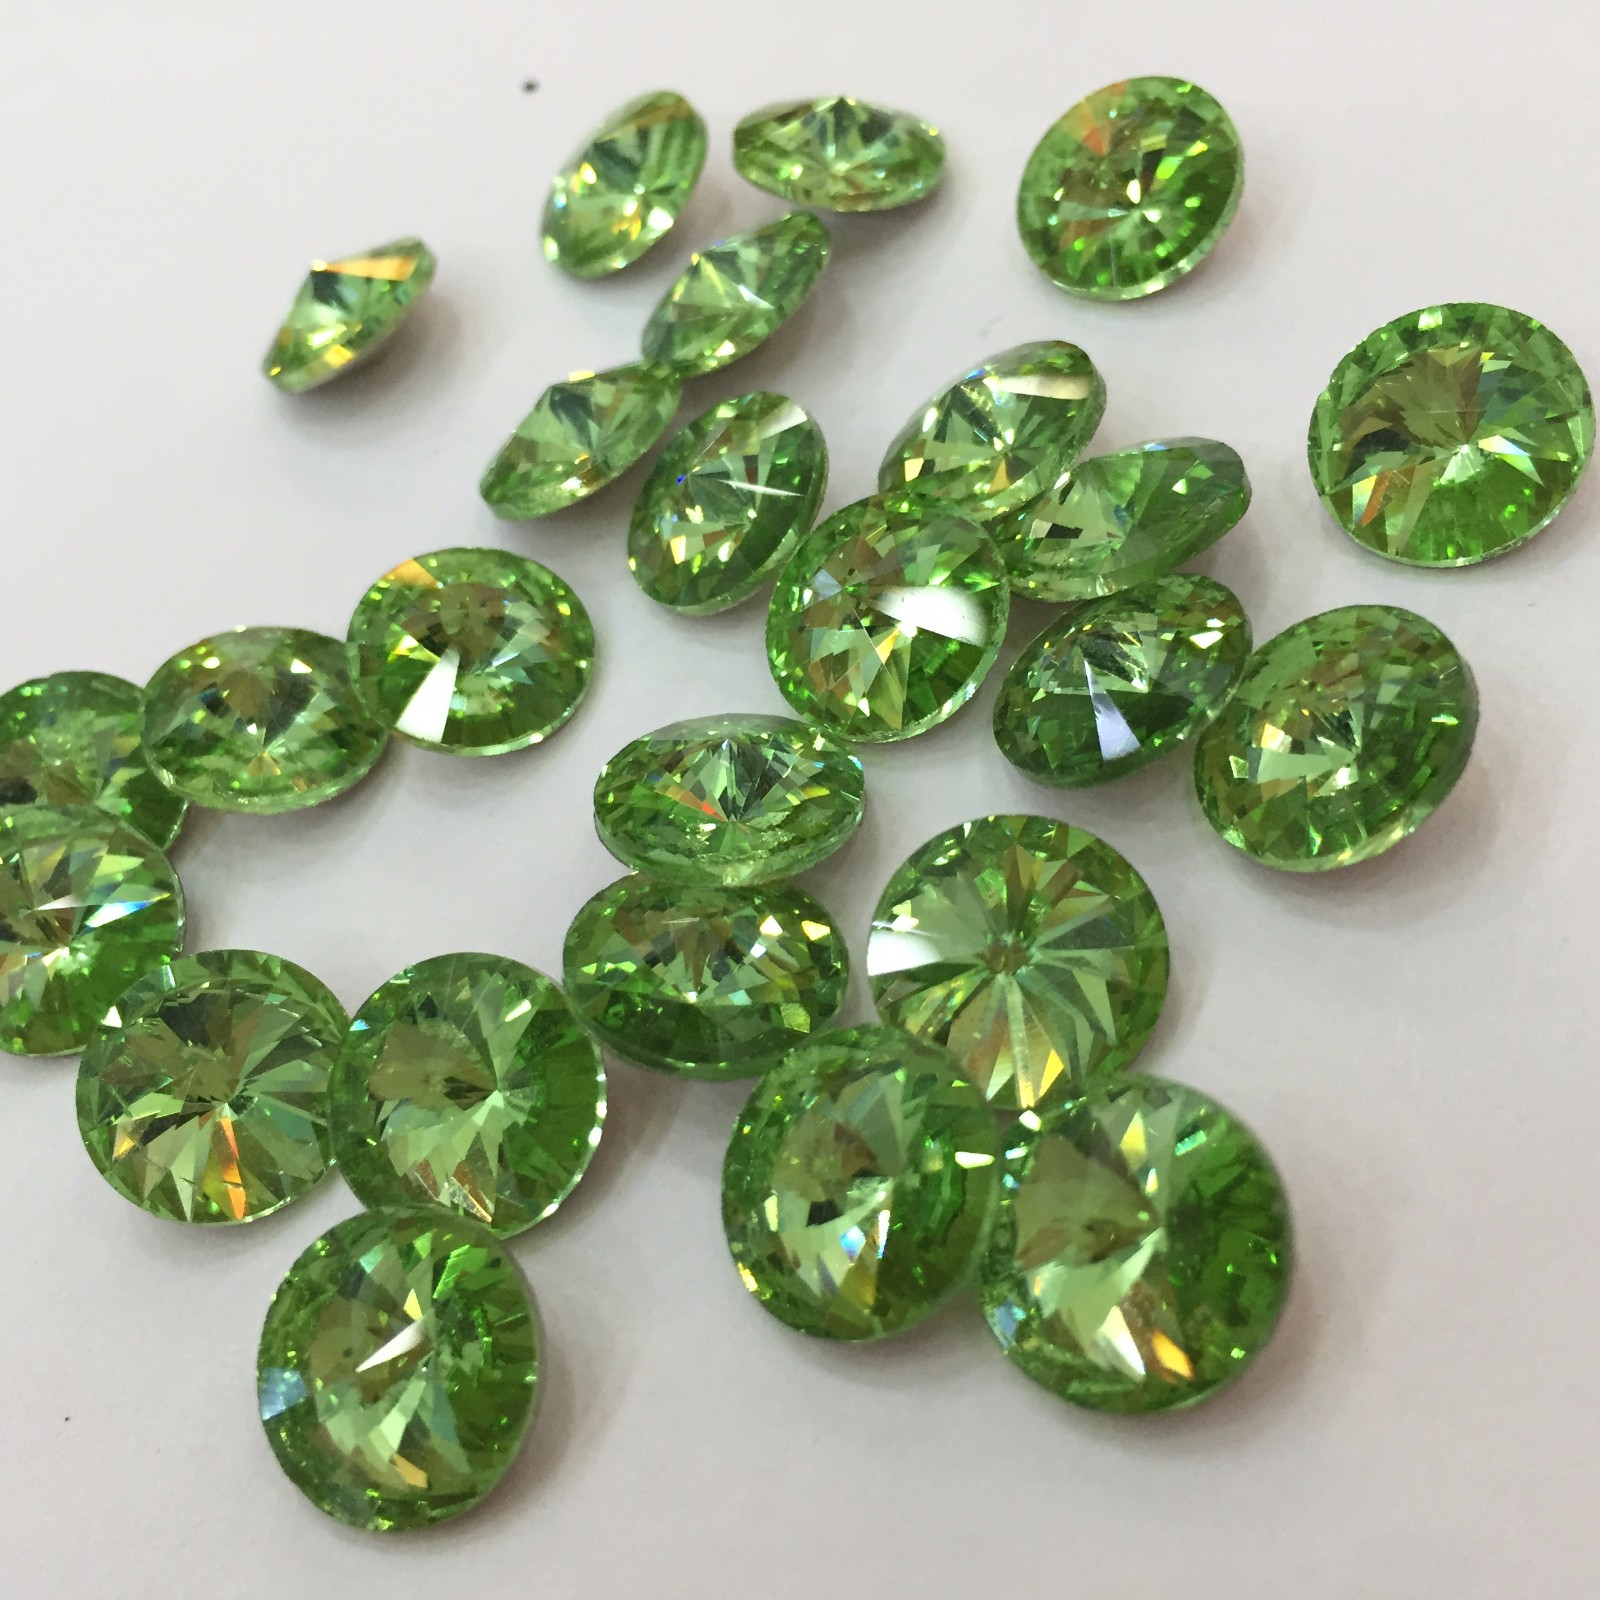 Jpstrass-High-quality Jp Strass Flat Back Glass Rhinestones With-1